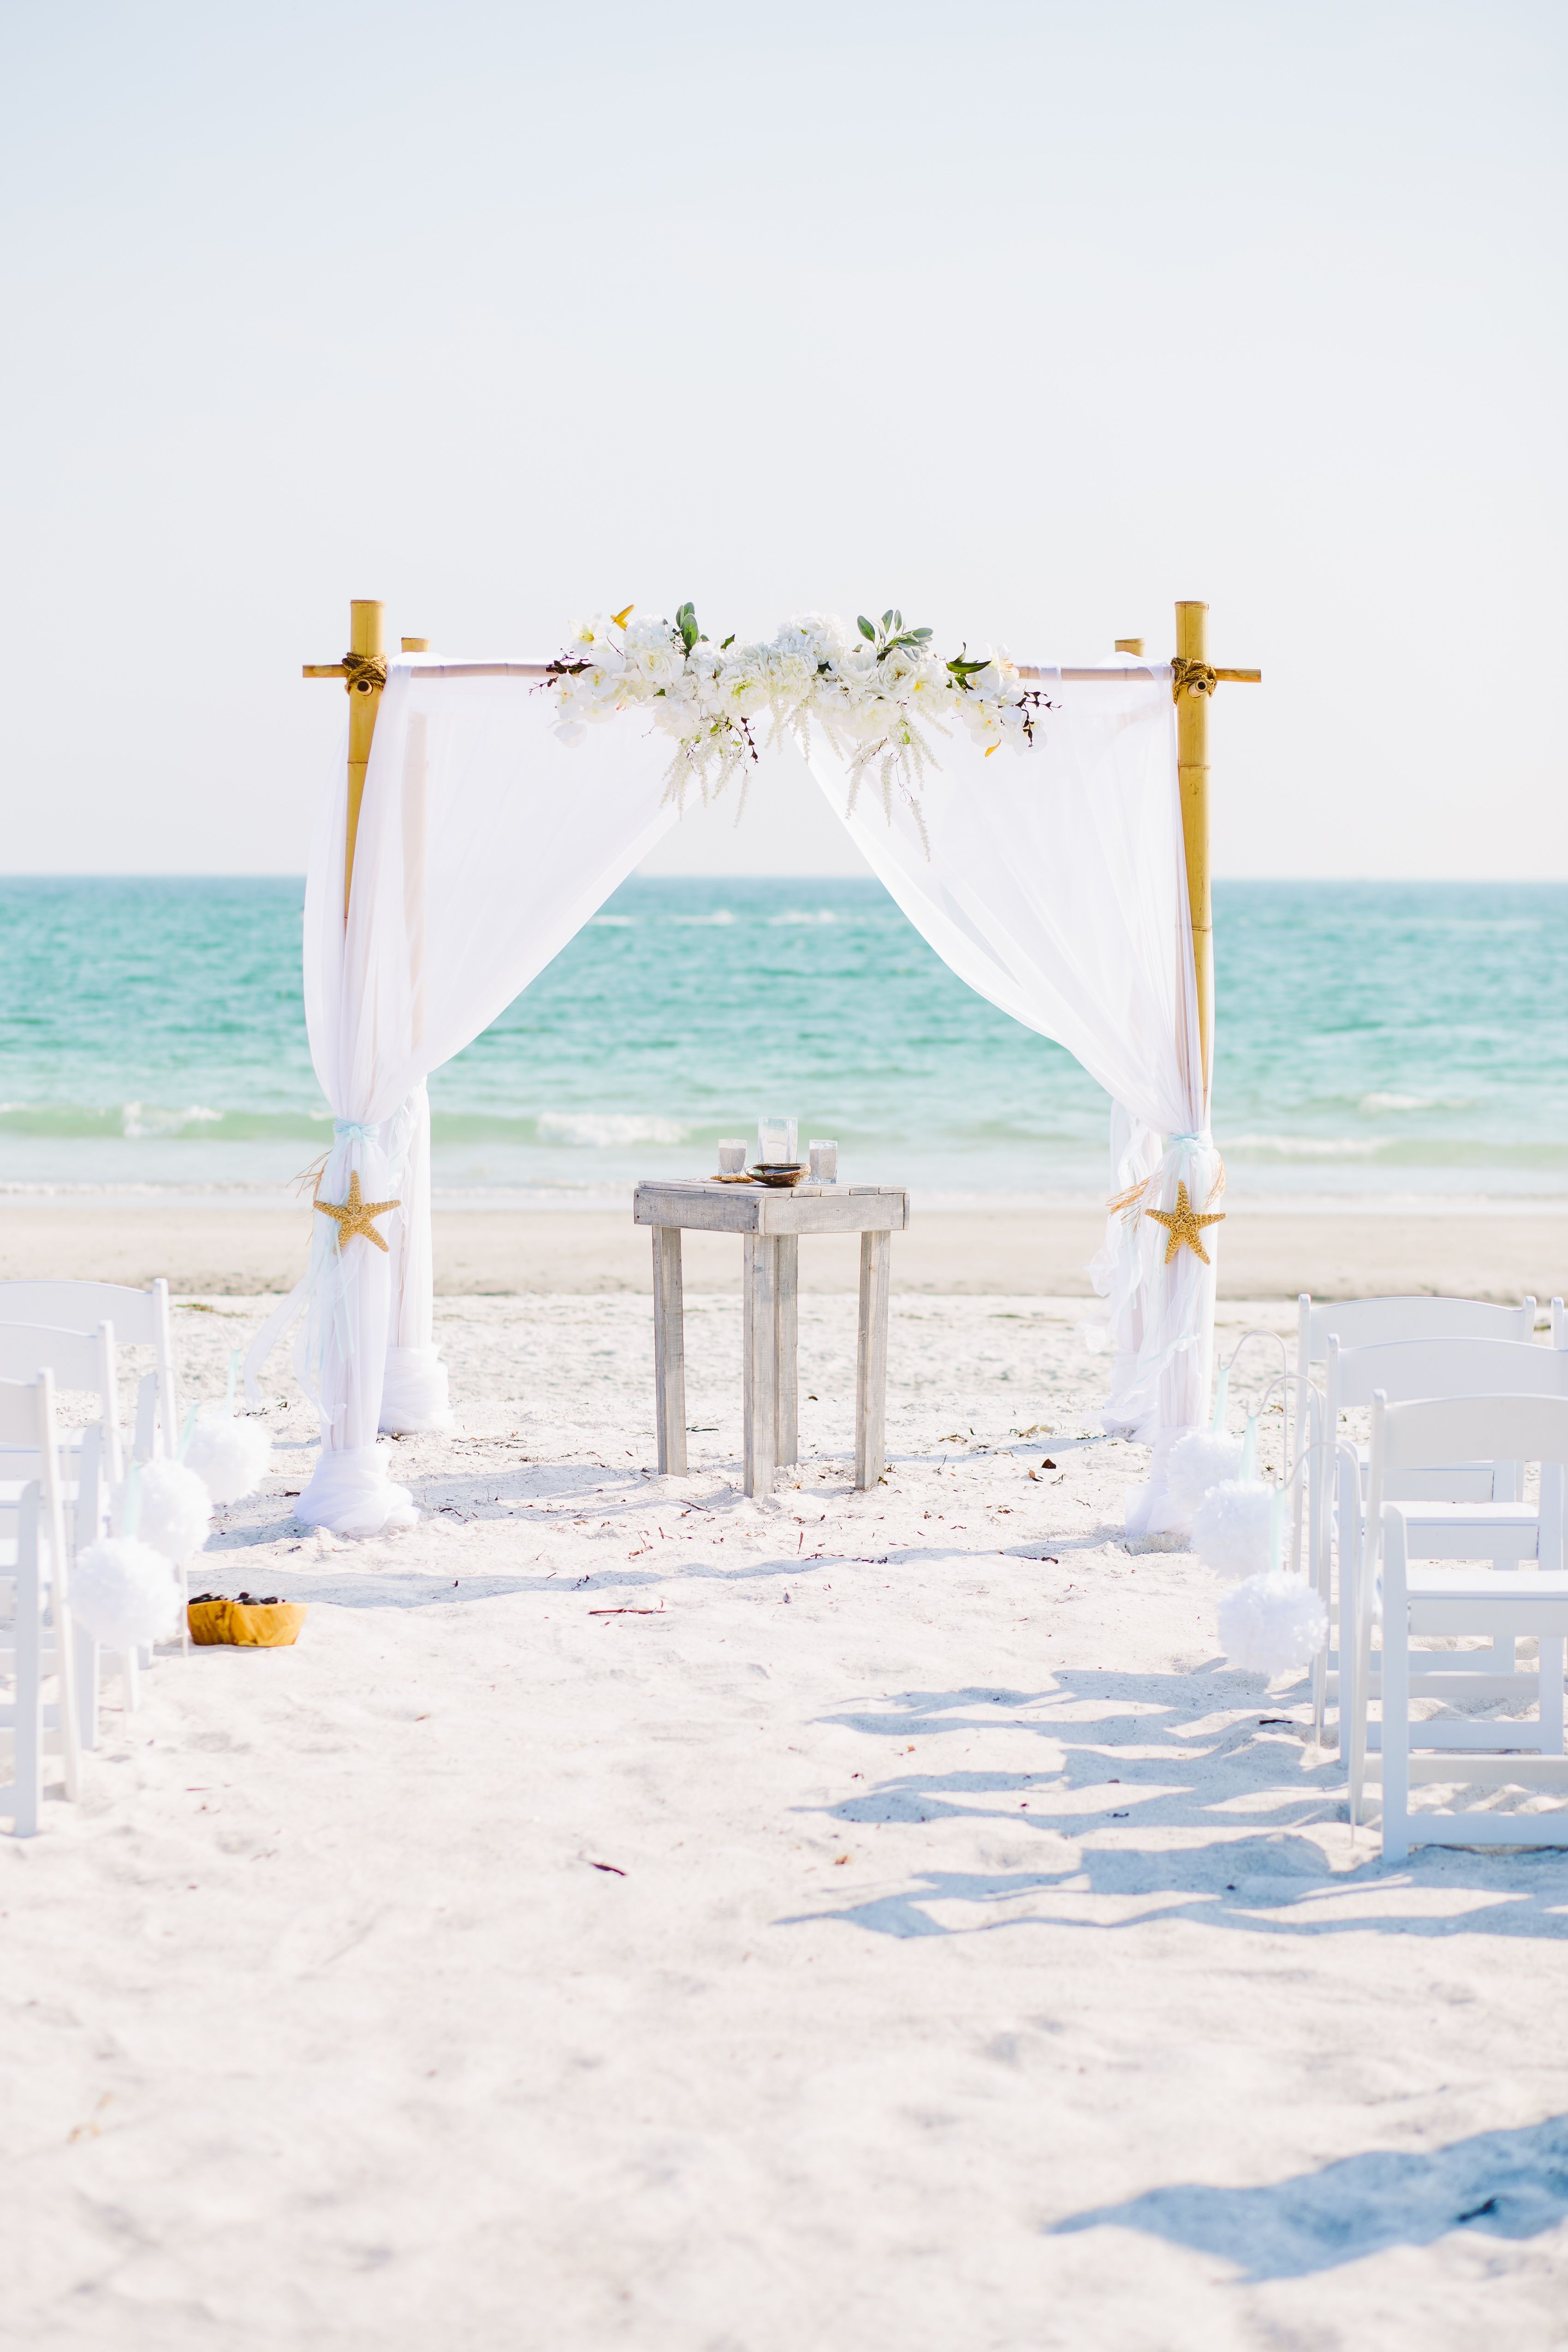 Beach wedding decorations elegant  Elegant white beach wedding arbor DestinationWeddingIdeas